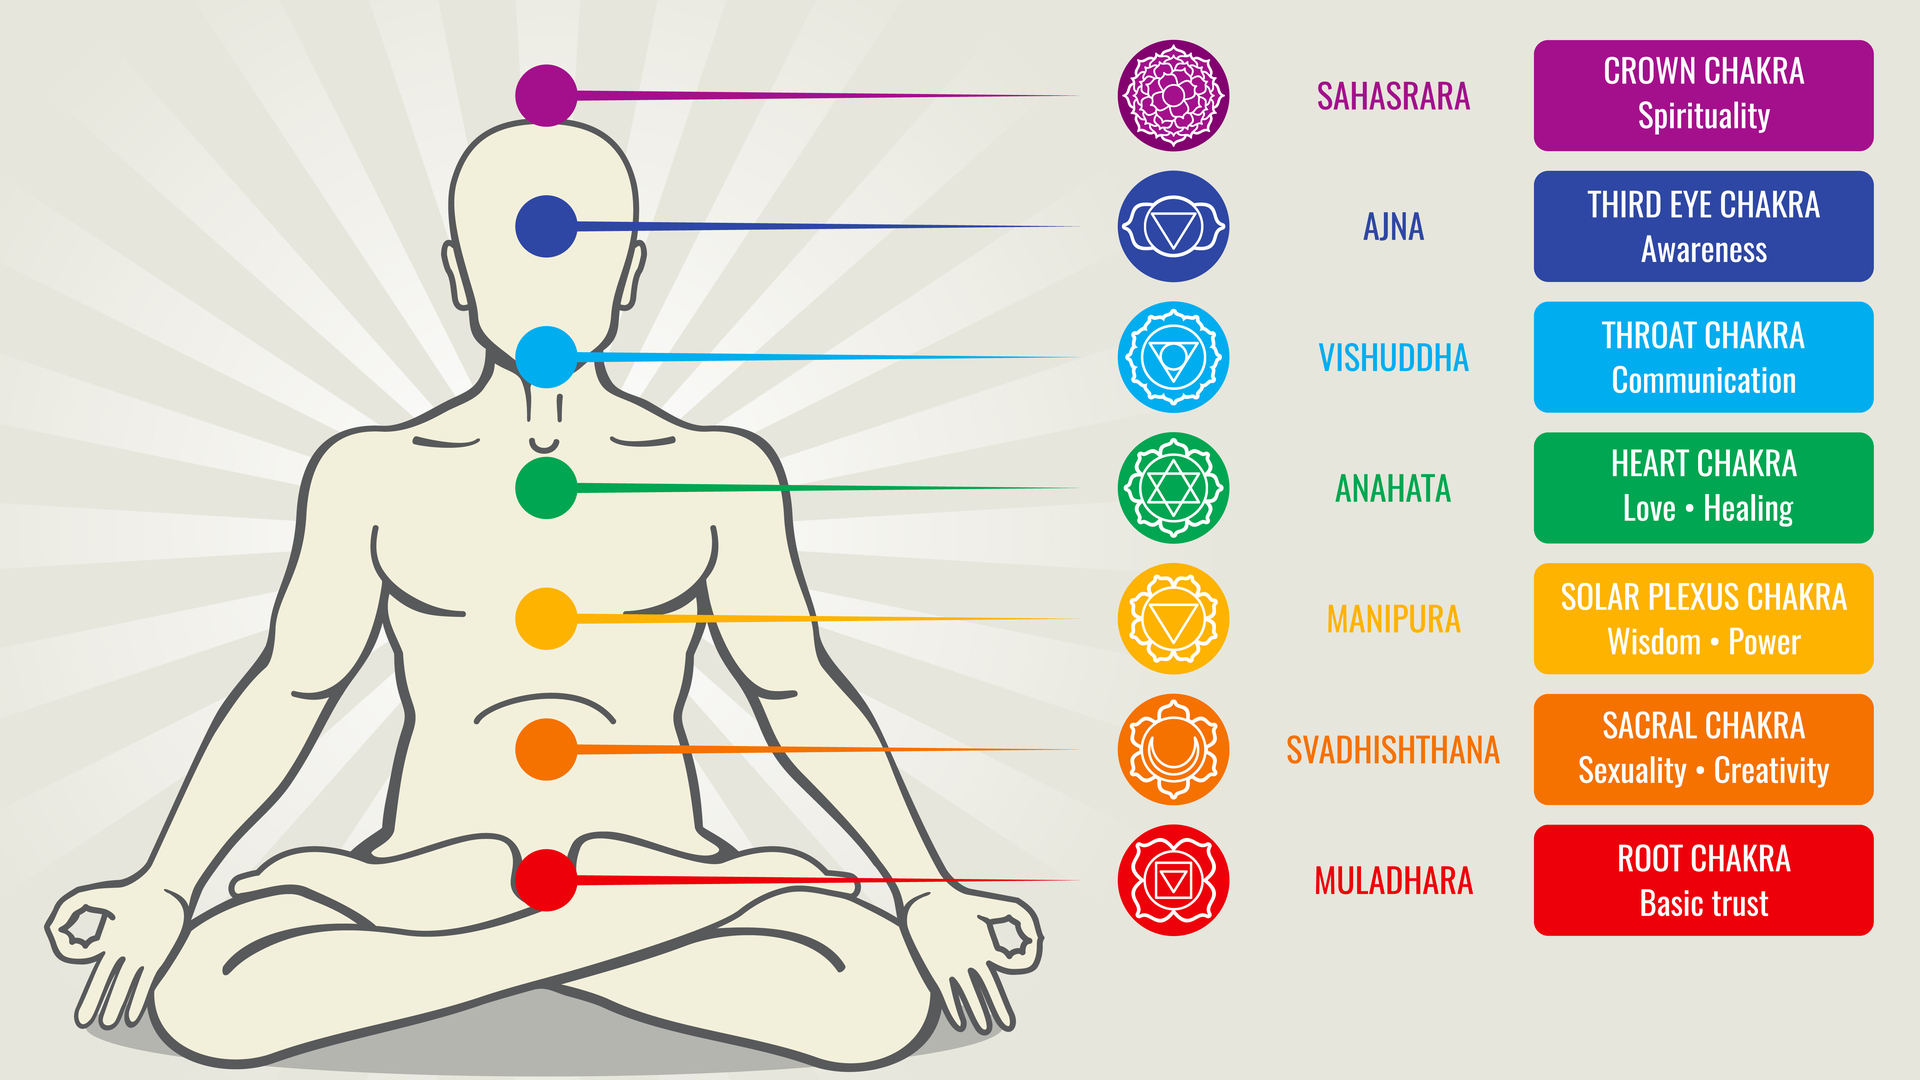 Transforming Symptoms of the Lower 4 Chakras